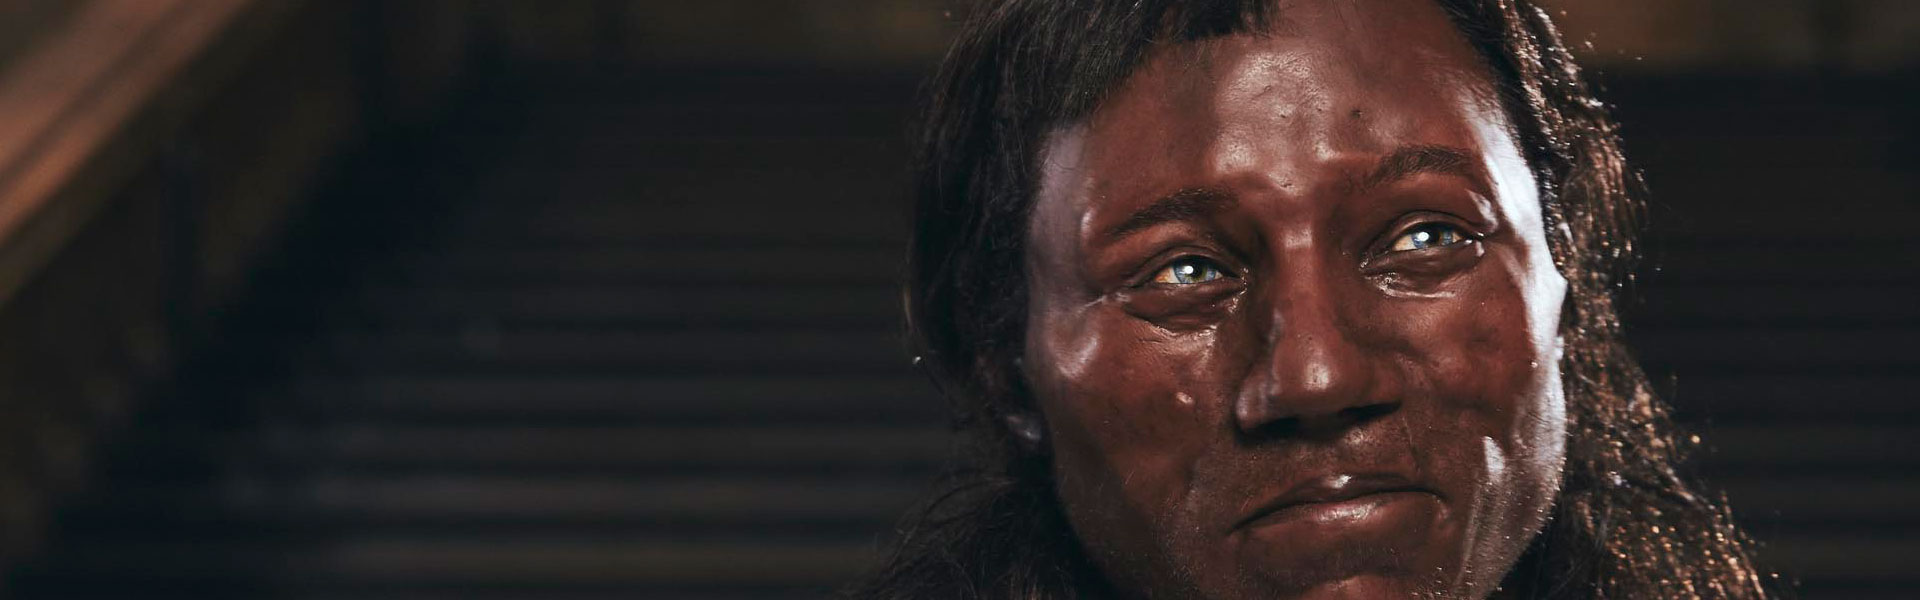 cheddar-man-close-up-feature-hero